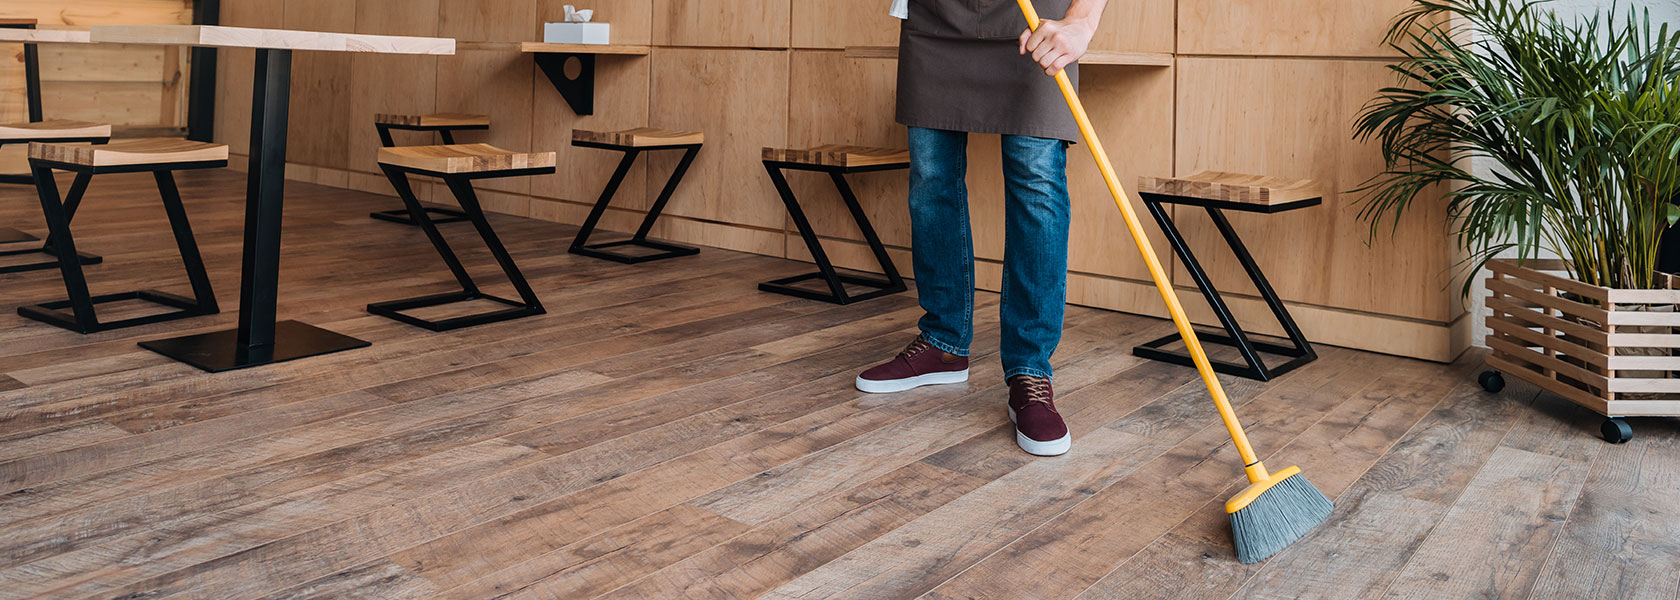 Restaurant Cleaning Services in Dubai   Maids on Demand